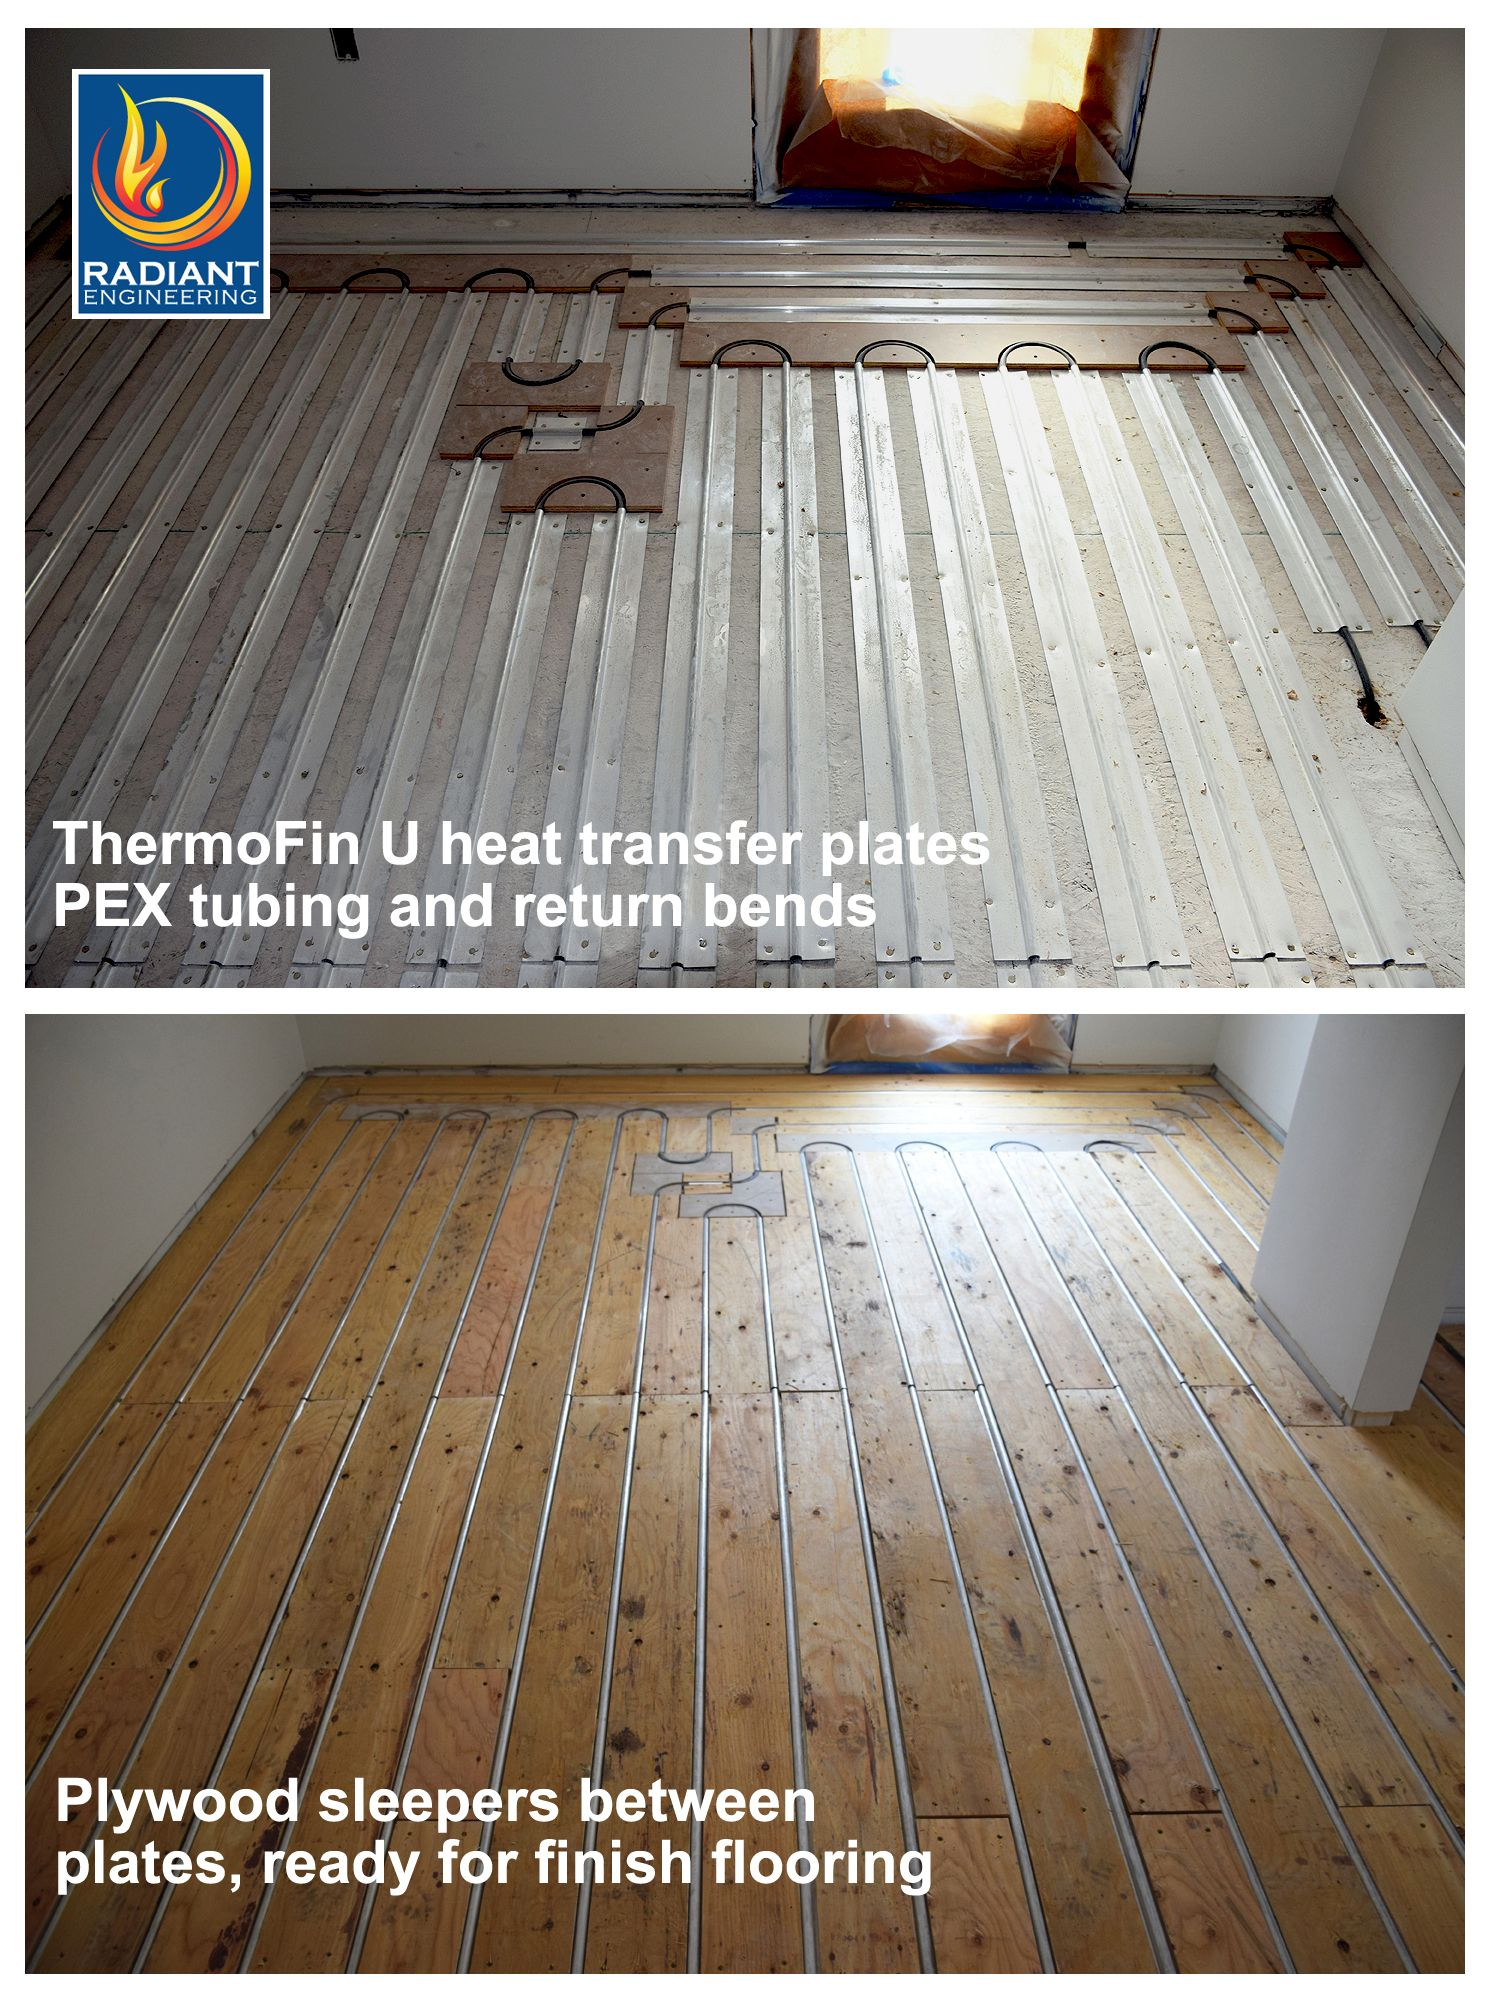 Pin By Radiant Design Supply Inc On Hardwood Floors And Radiant Heating Hydronic Radiant Heat Hydronic Radiant Floor Heating Radiant Heat